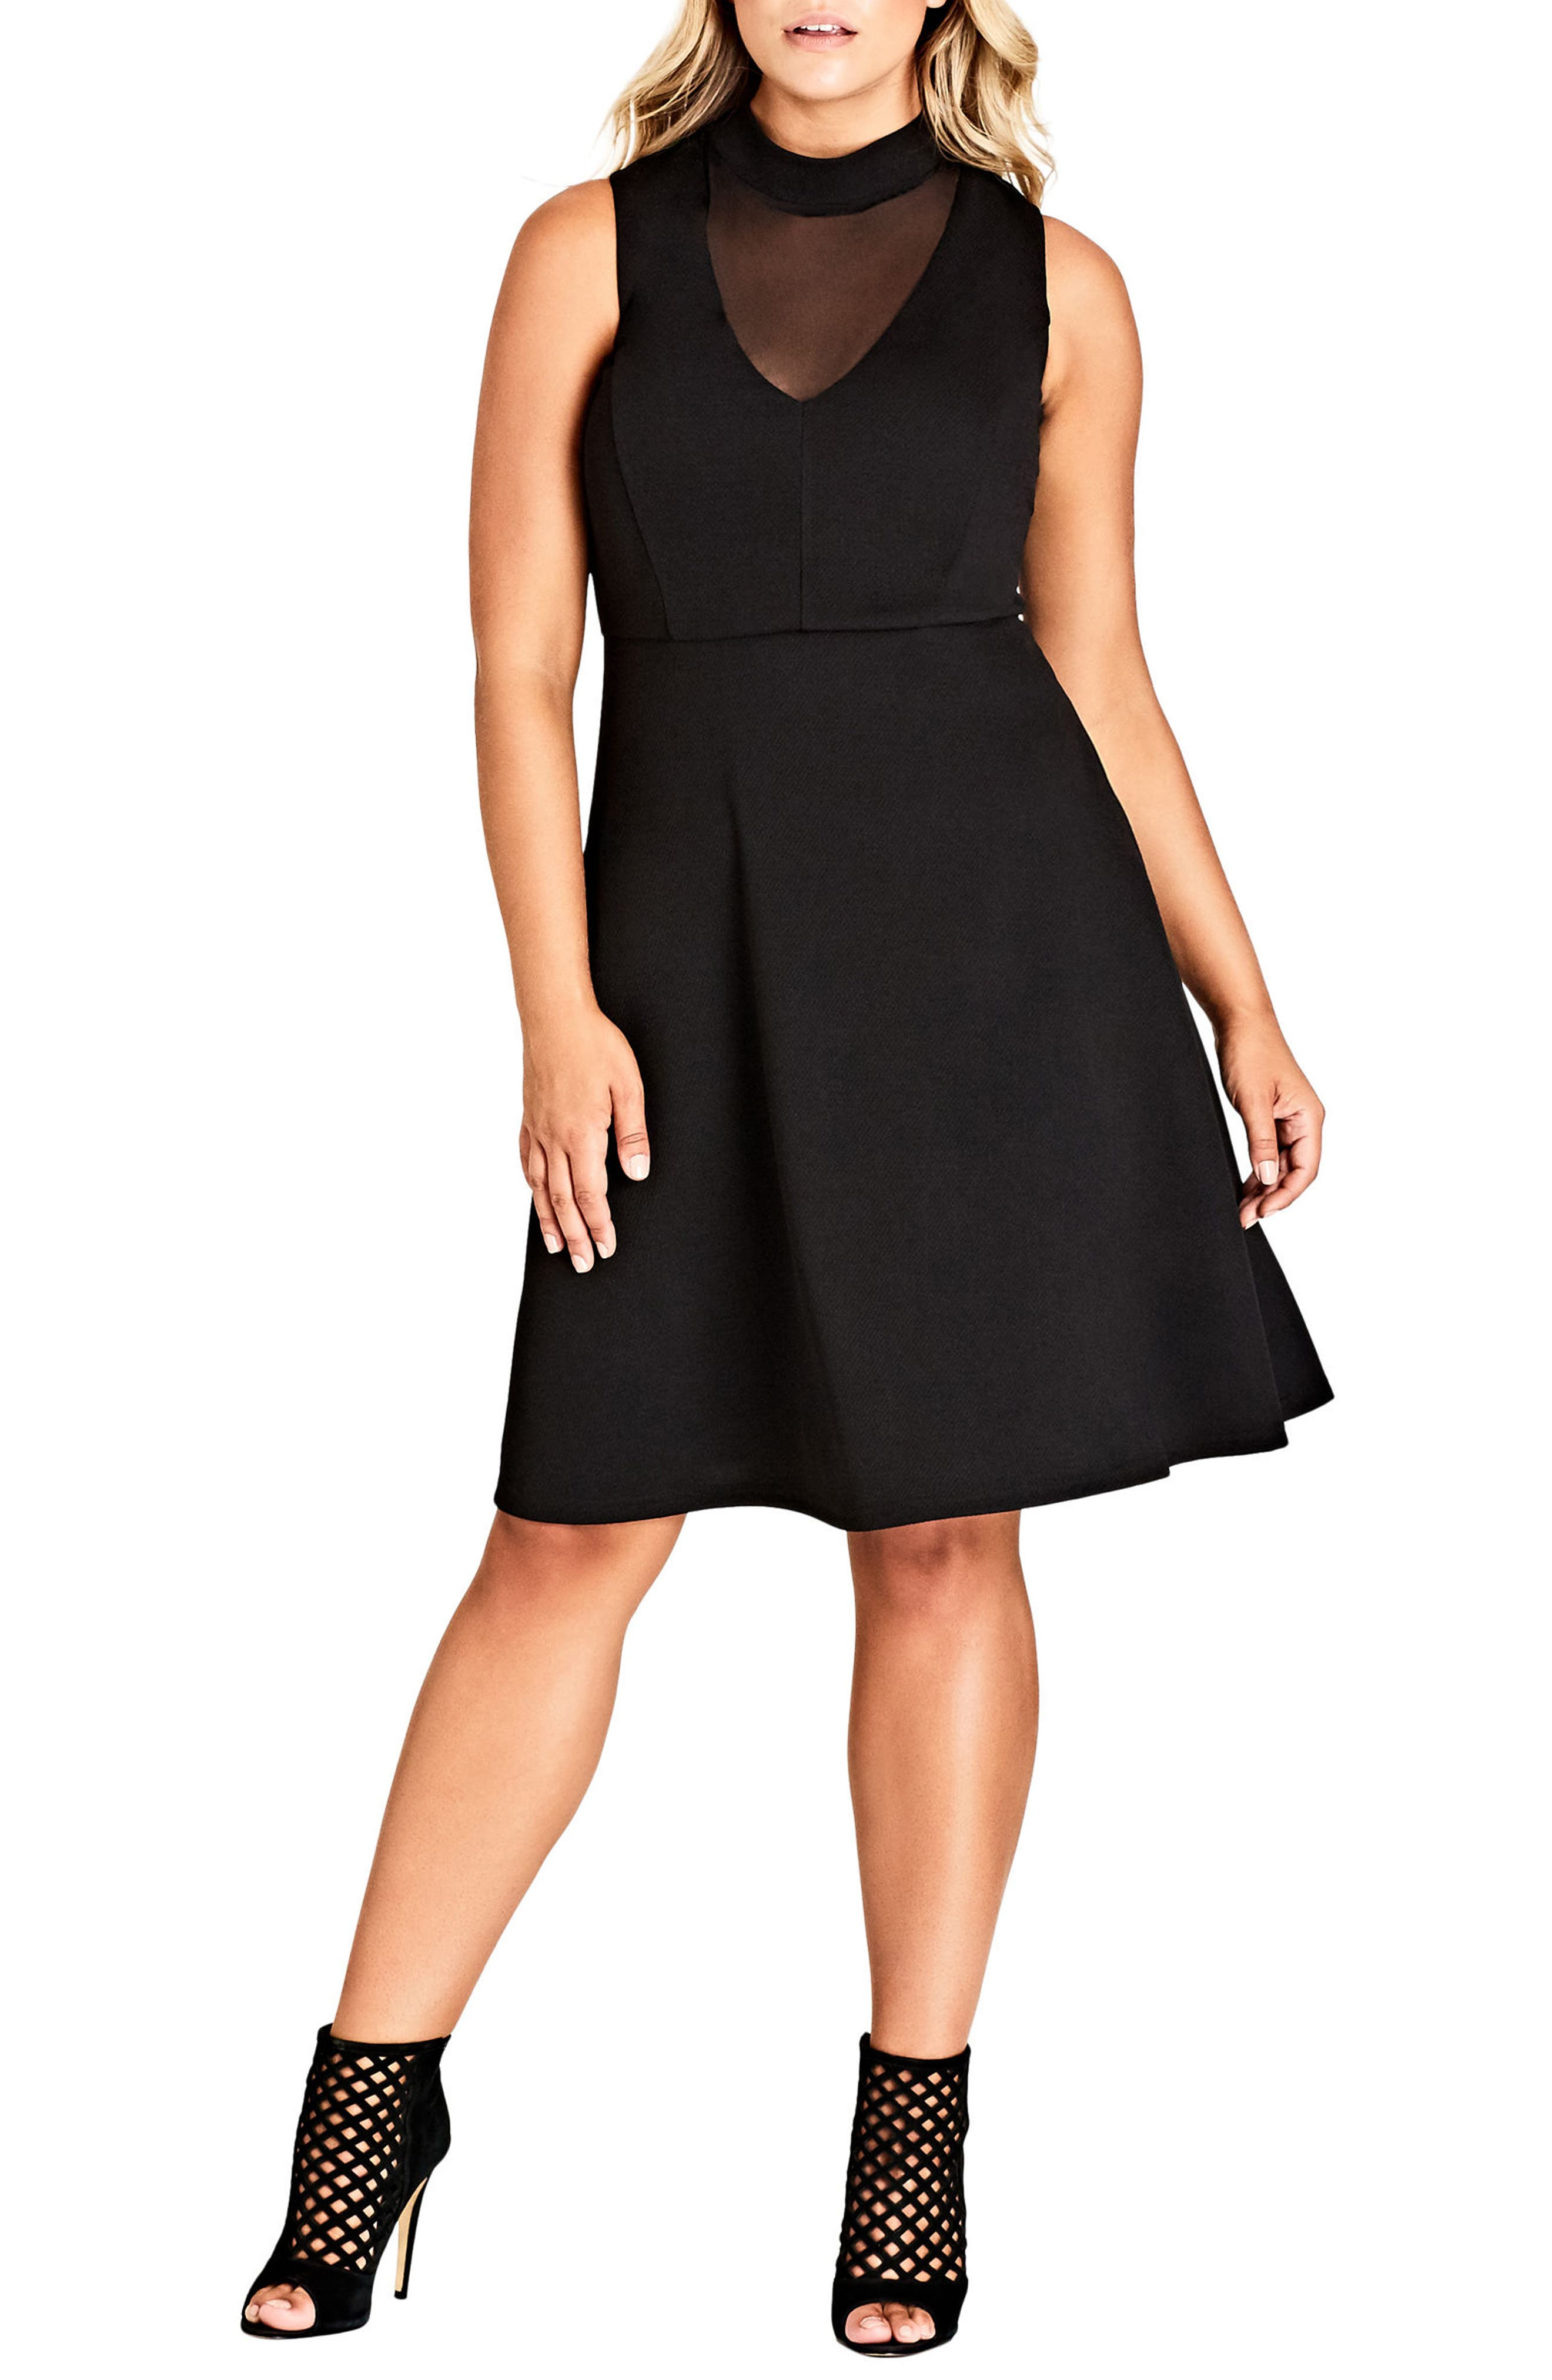 Alternate Image 1 Selected - City Chic Sheer Neck A-Line Dress (Plus Size)